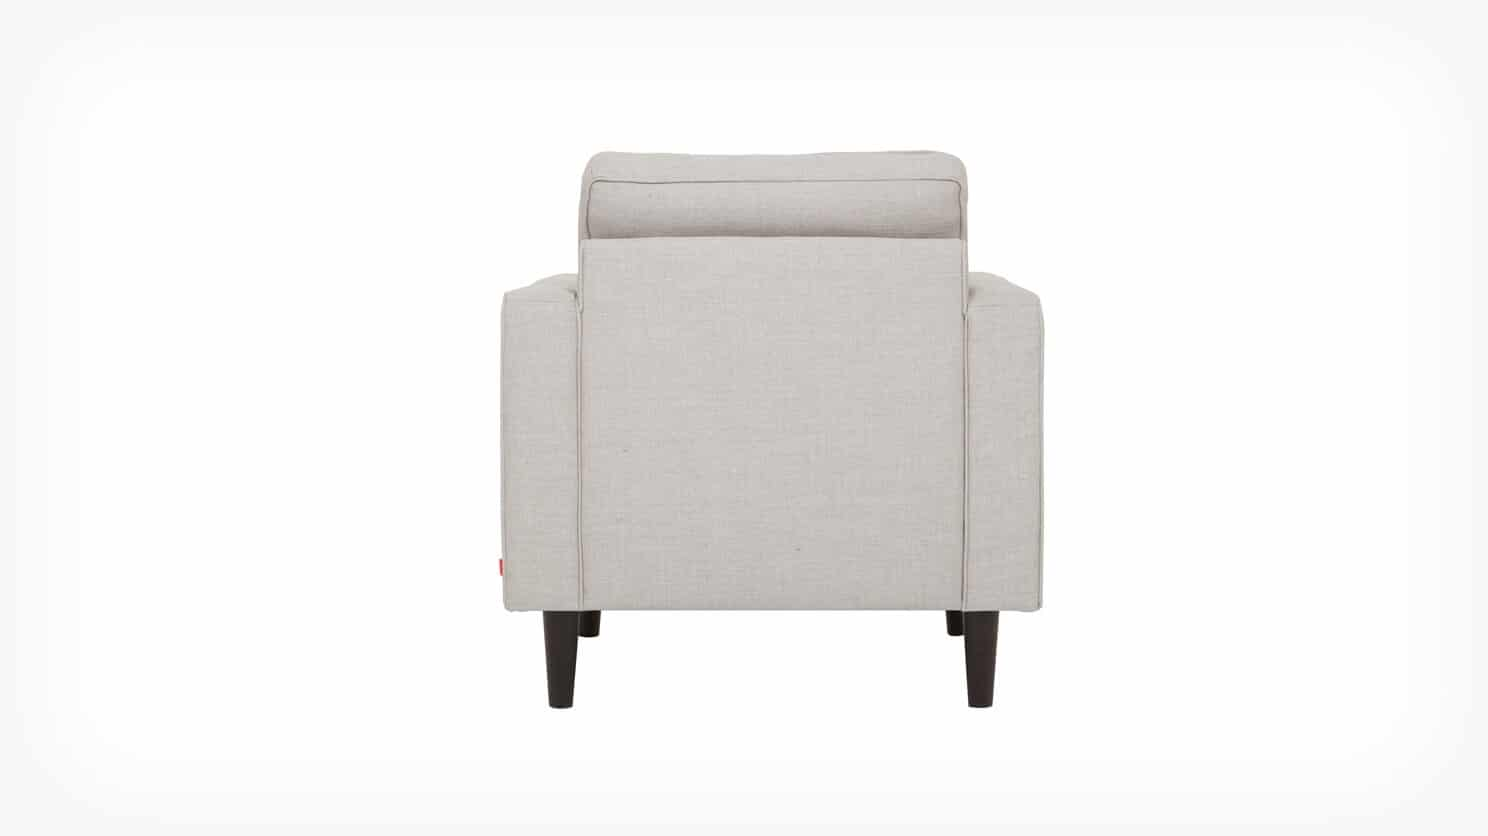 30095 02 3 chairs reverie chair polo grey back